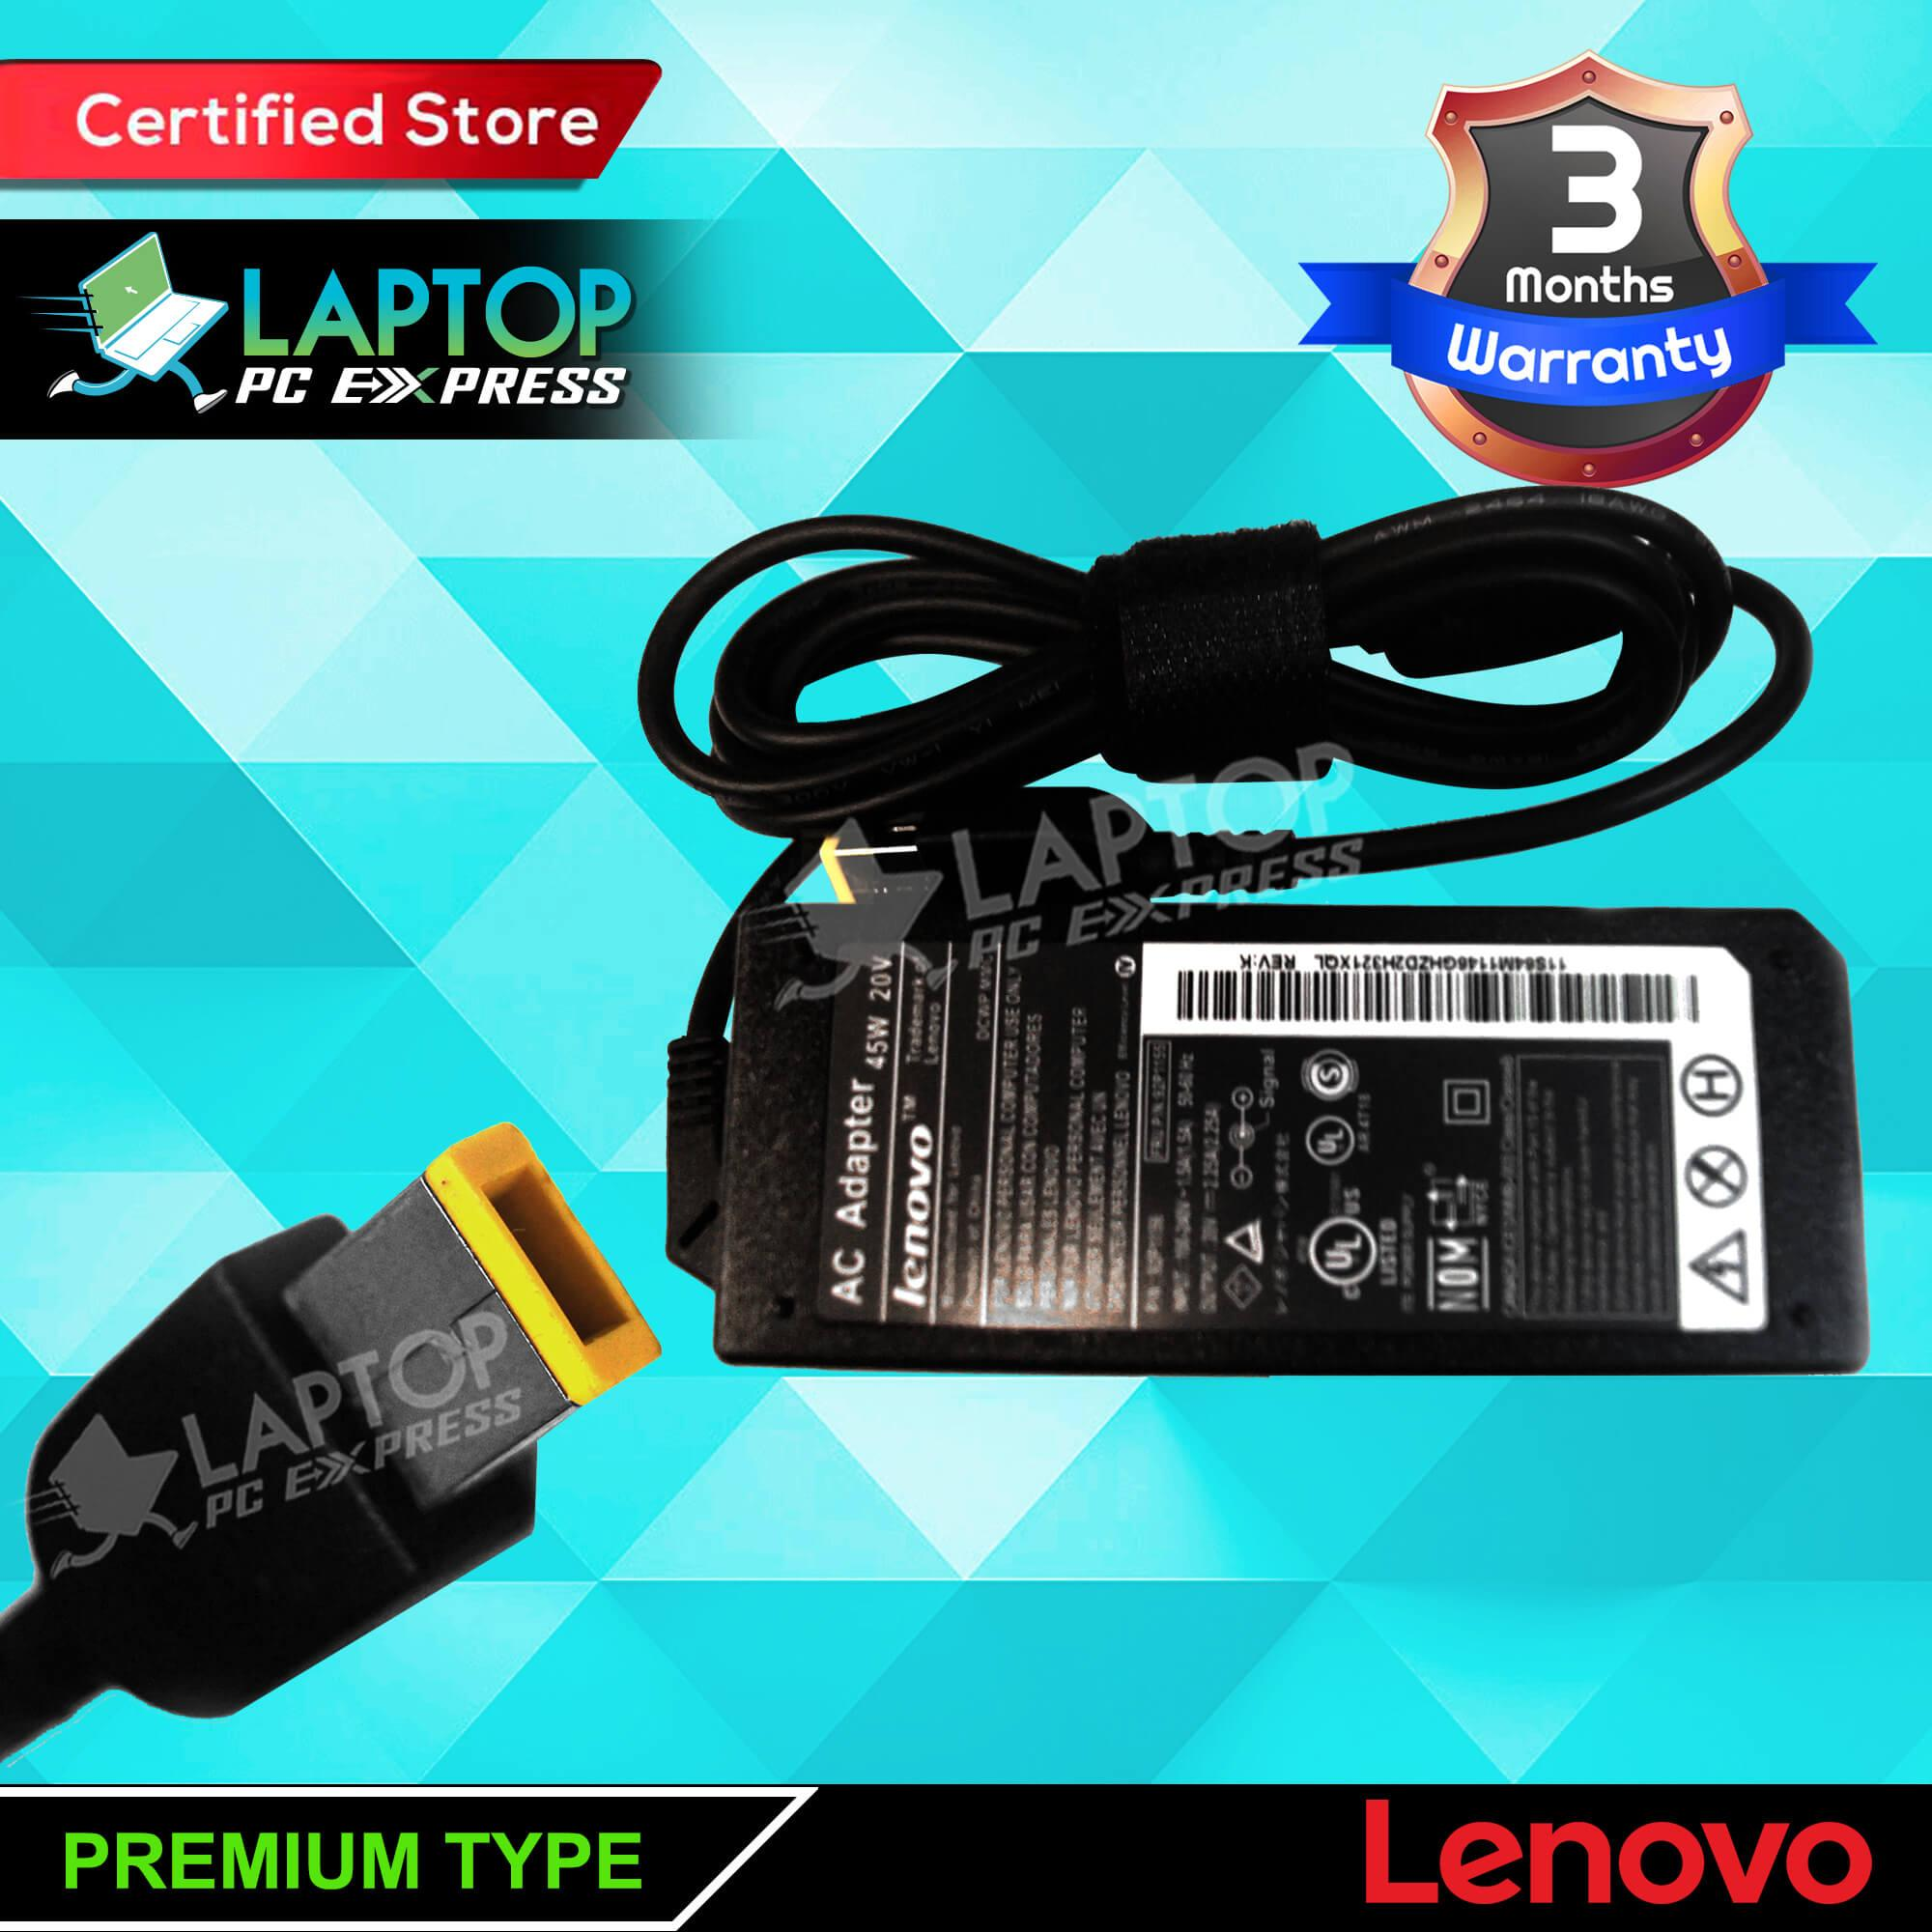 Latest Lenovo Products Up To 60 Off Lazada Philippines Lg K10 Power 4g Lte 55ampquot 2 16gb 13 5mp Cord Adaptors